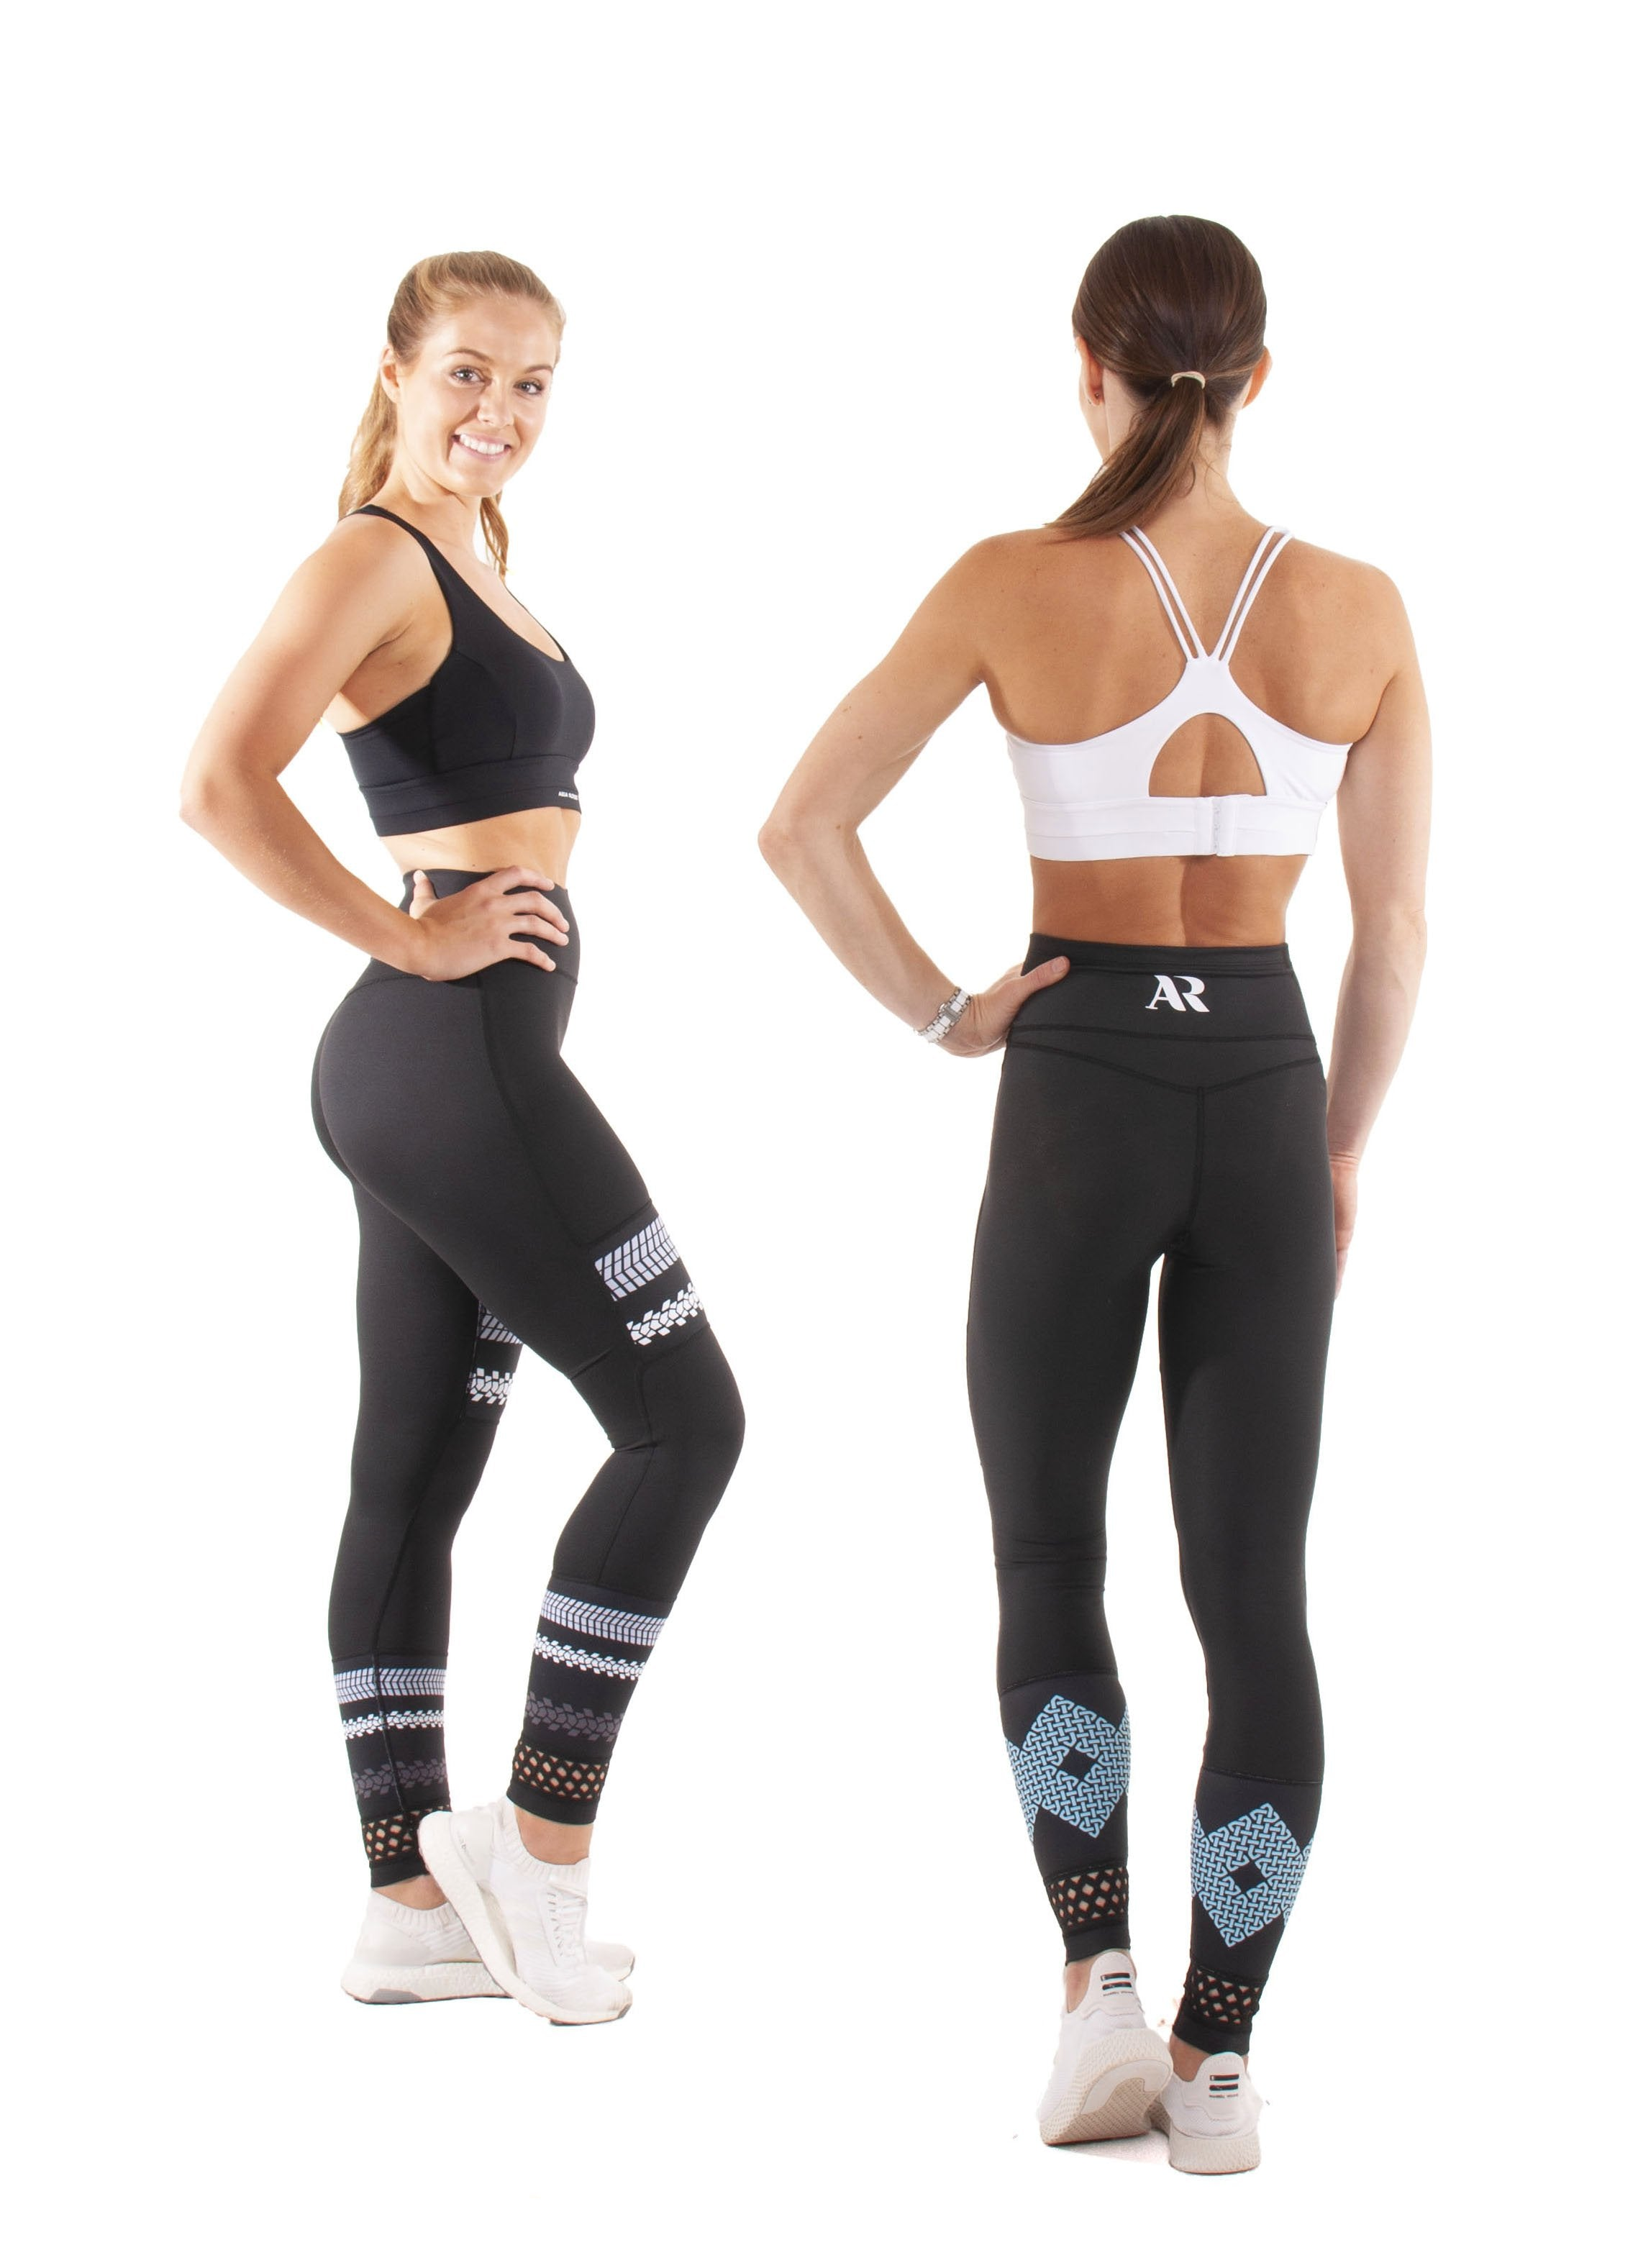 Akia Rose Activewear - Leggings - reversible printed both sides, high waist, patterned elastic at ankle